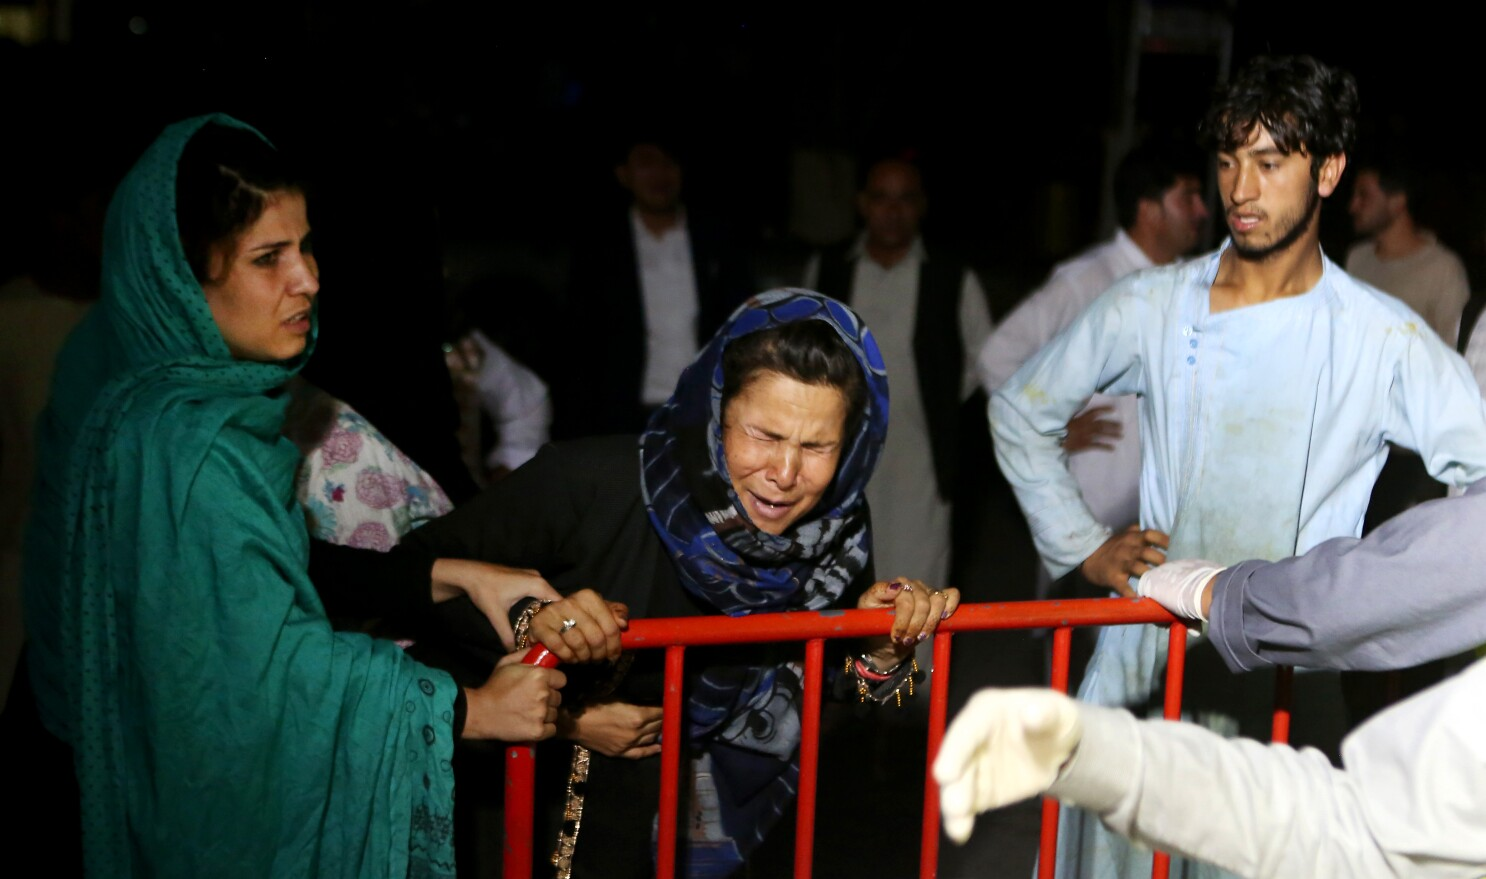 Dozens feared dead or wounded in blast at Kabul wedding hall